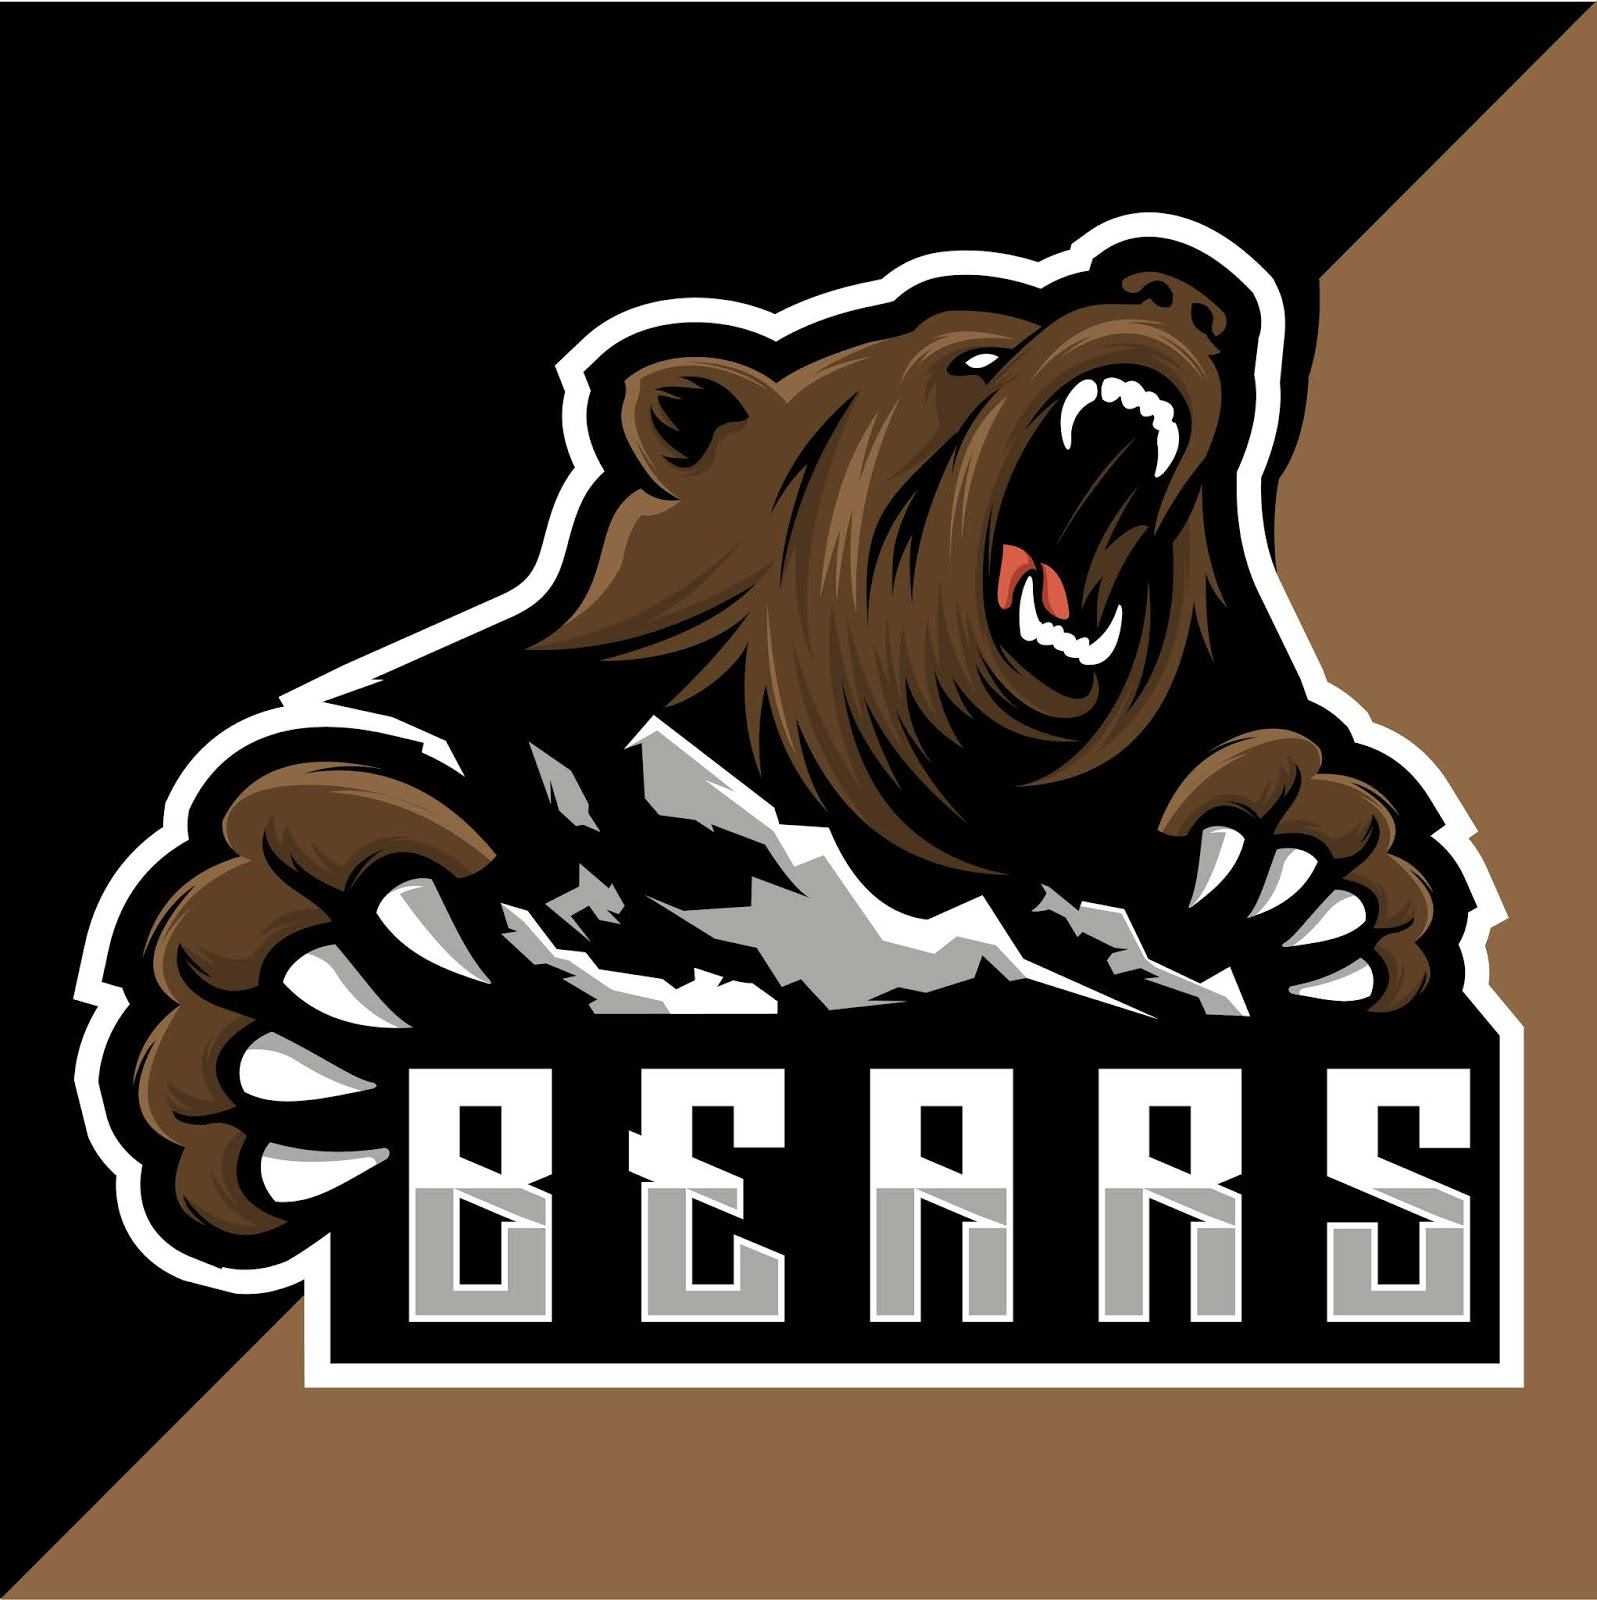 Bear Mountain Esport Logo Free Download Vector CDR, AI, EPS and PNG Formats